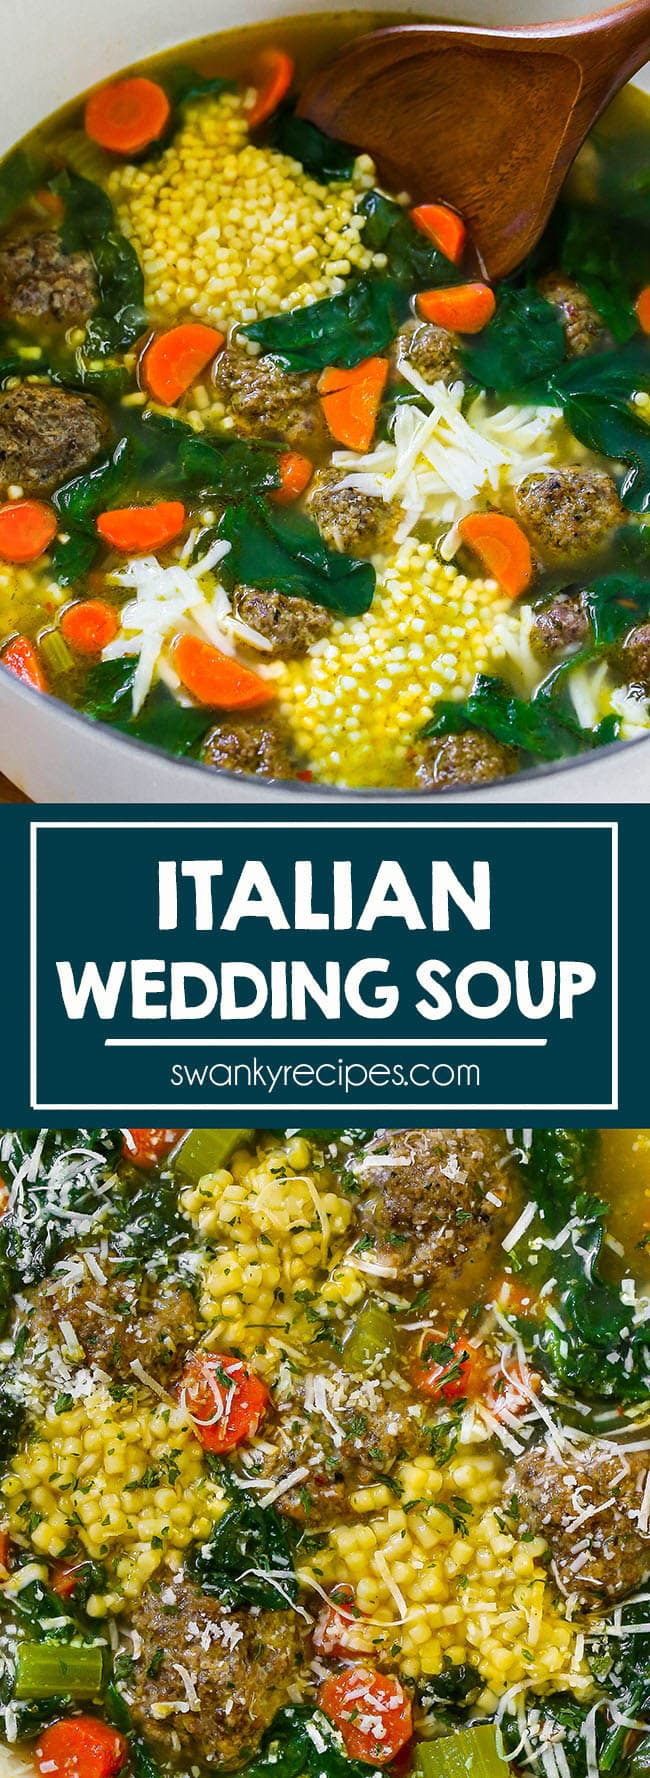 Italian Wedding Soup - The BEST most flavorful easy soup recipe. Italian style beef meatballs in a chicken and vegetable base soup with cheese and pasta. We make this at least a few times a month for dinner.